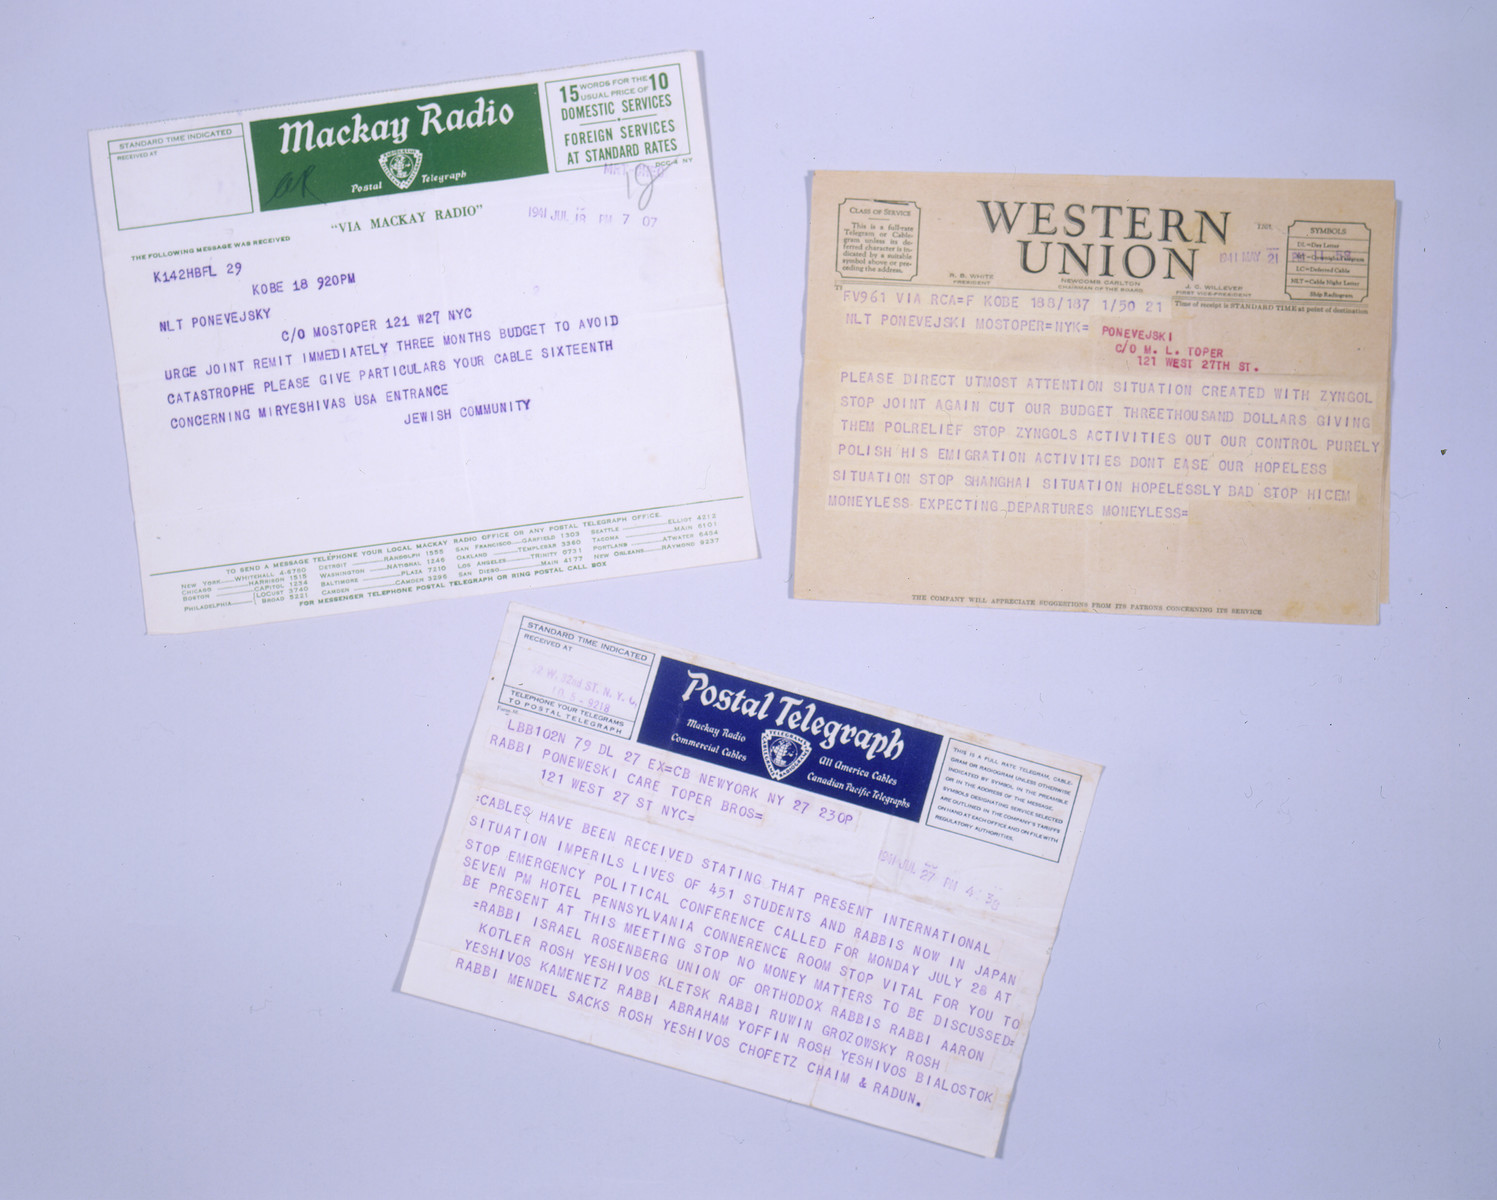 Telegrams sent to Anatole Ponevejsky, the former head of the Kobe Jewish community who had recently immigrated to America, asking for his help in securing visas for refugees in Japan.